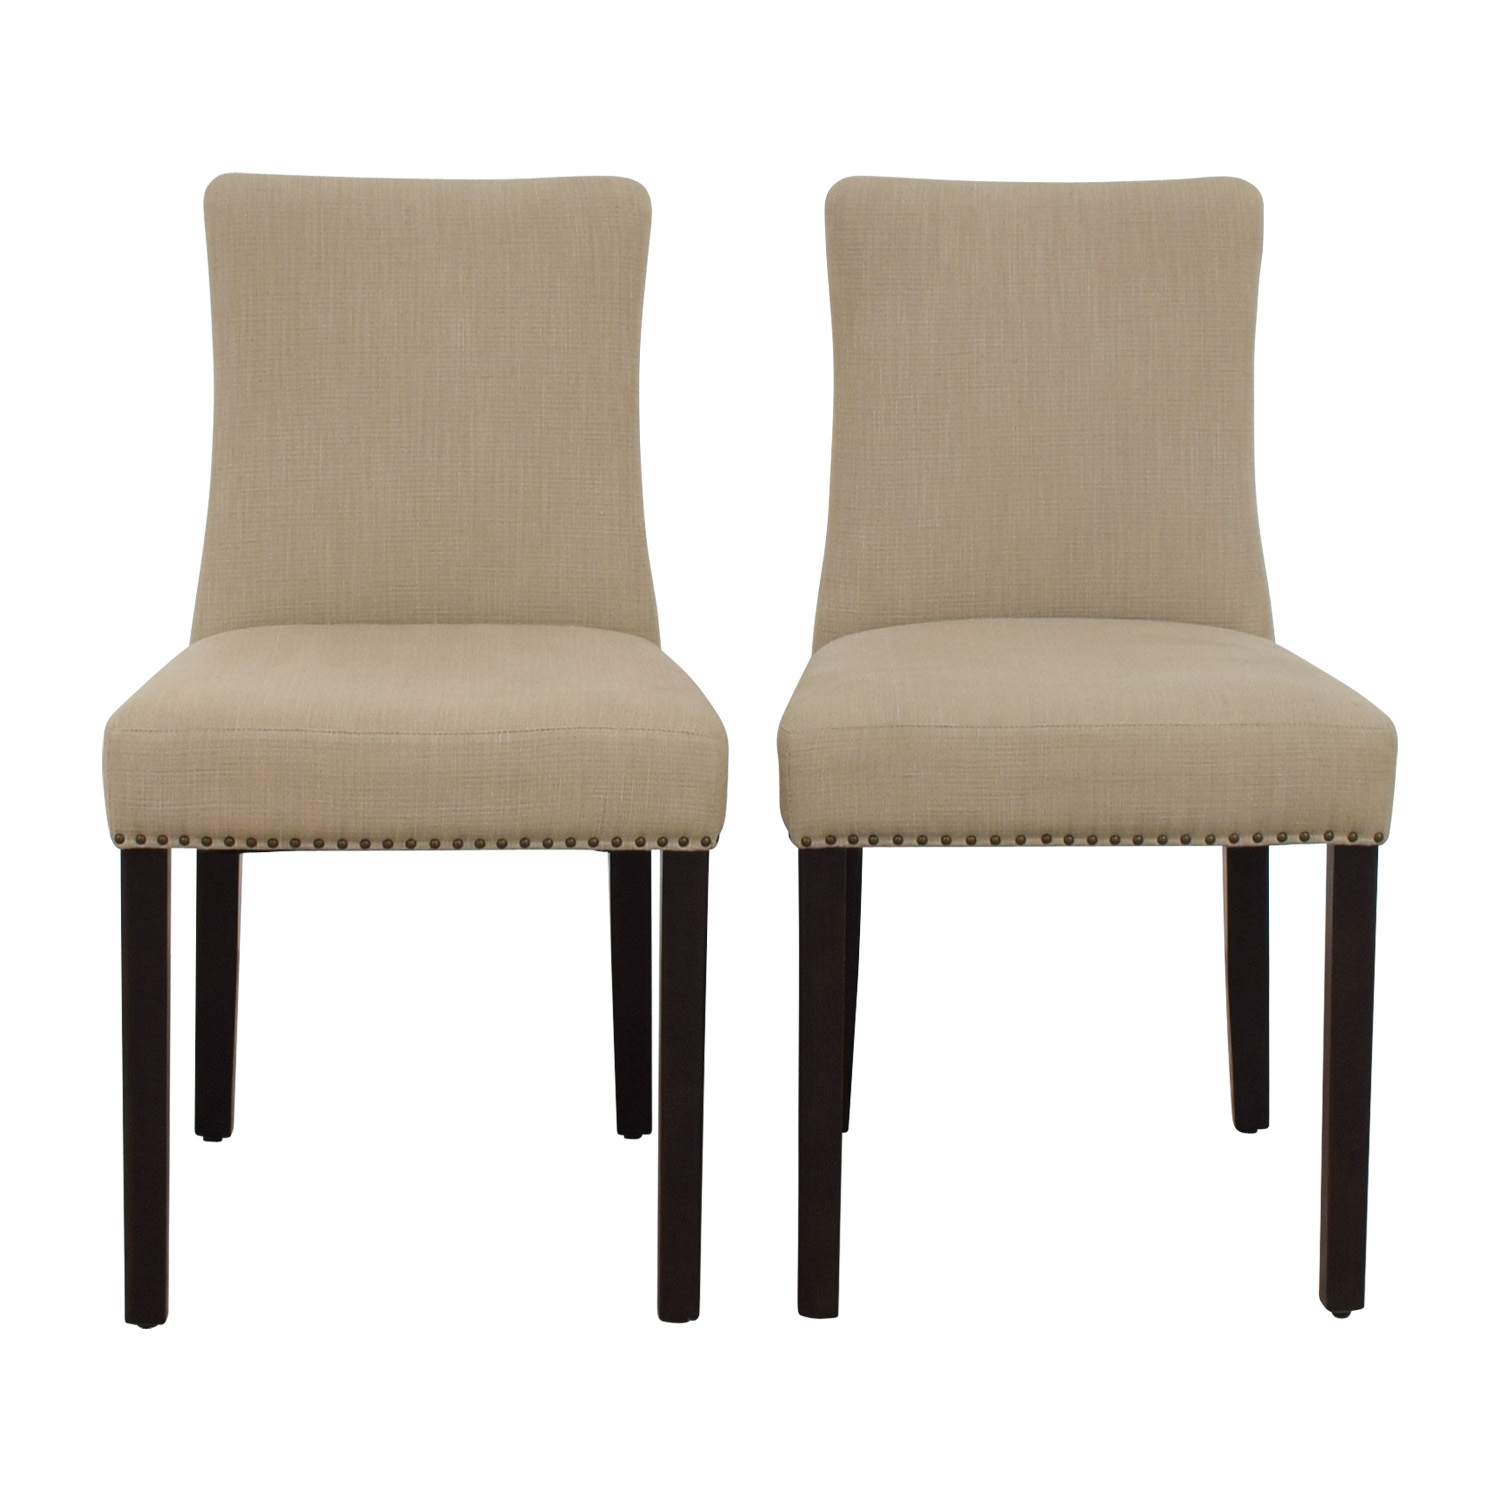 West Elm West Elm Tan Fabric Nailhead Side Chairs on sale